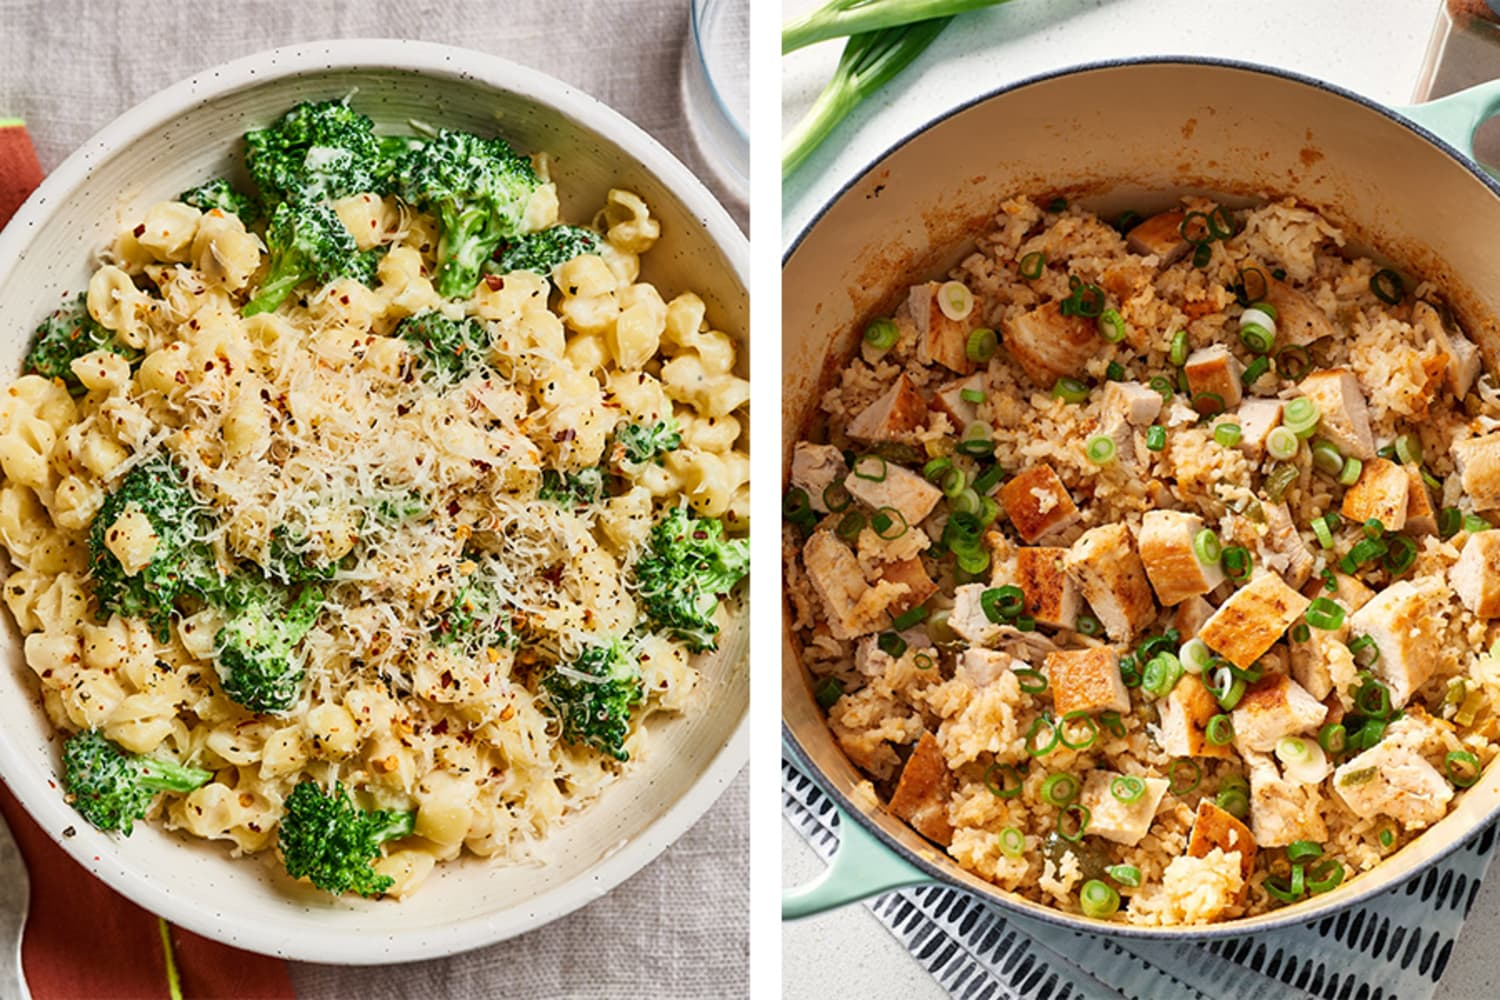 10 One-Pot Family Dinners That Cost Less Than $10 to Make